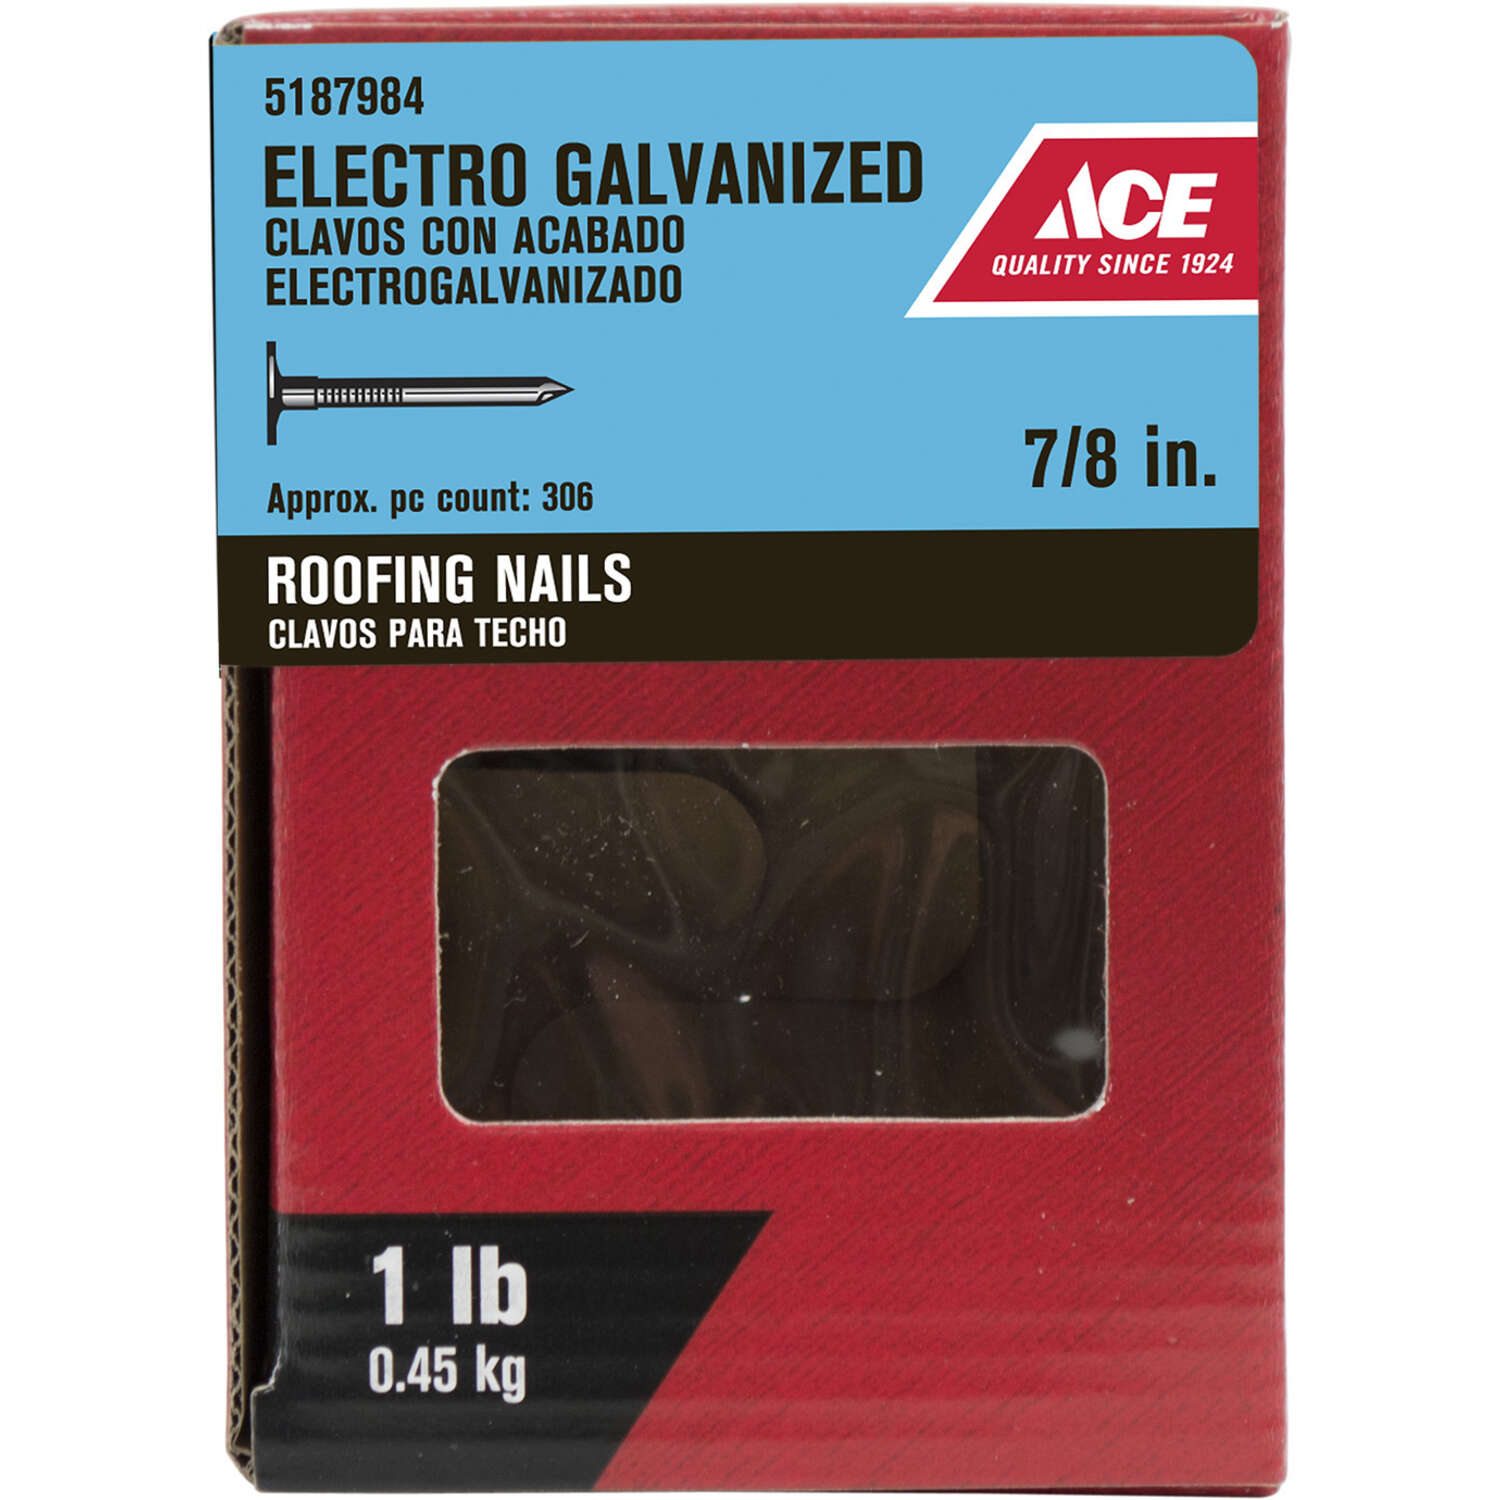 Ace  7/8 in. Roofing  Electro-Galvanized  Steel  Nail  Large  1 lb.